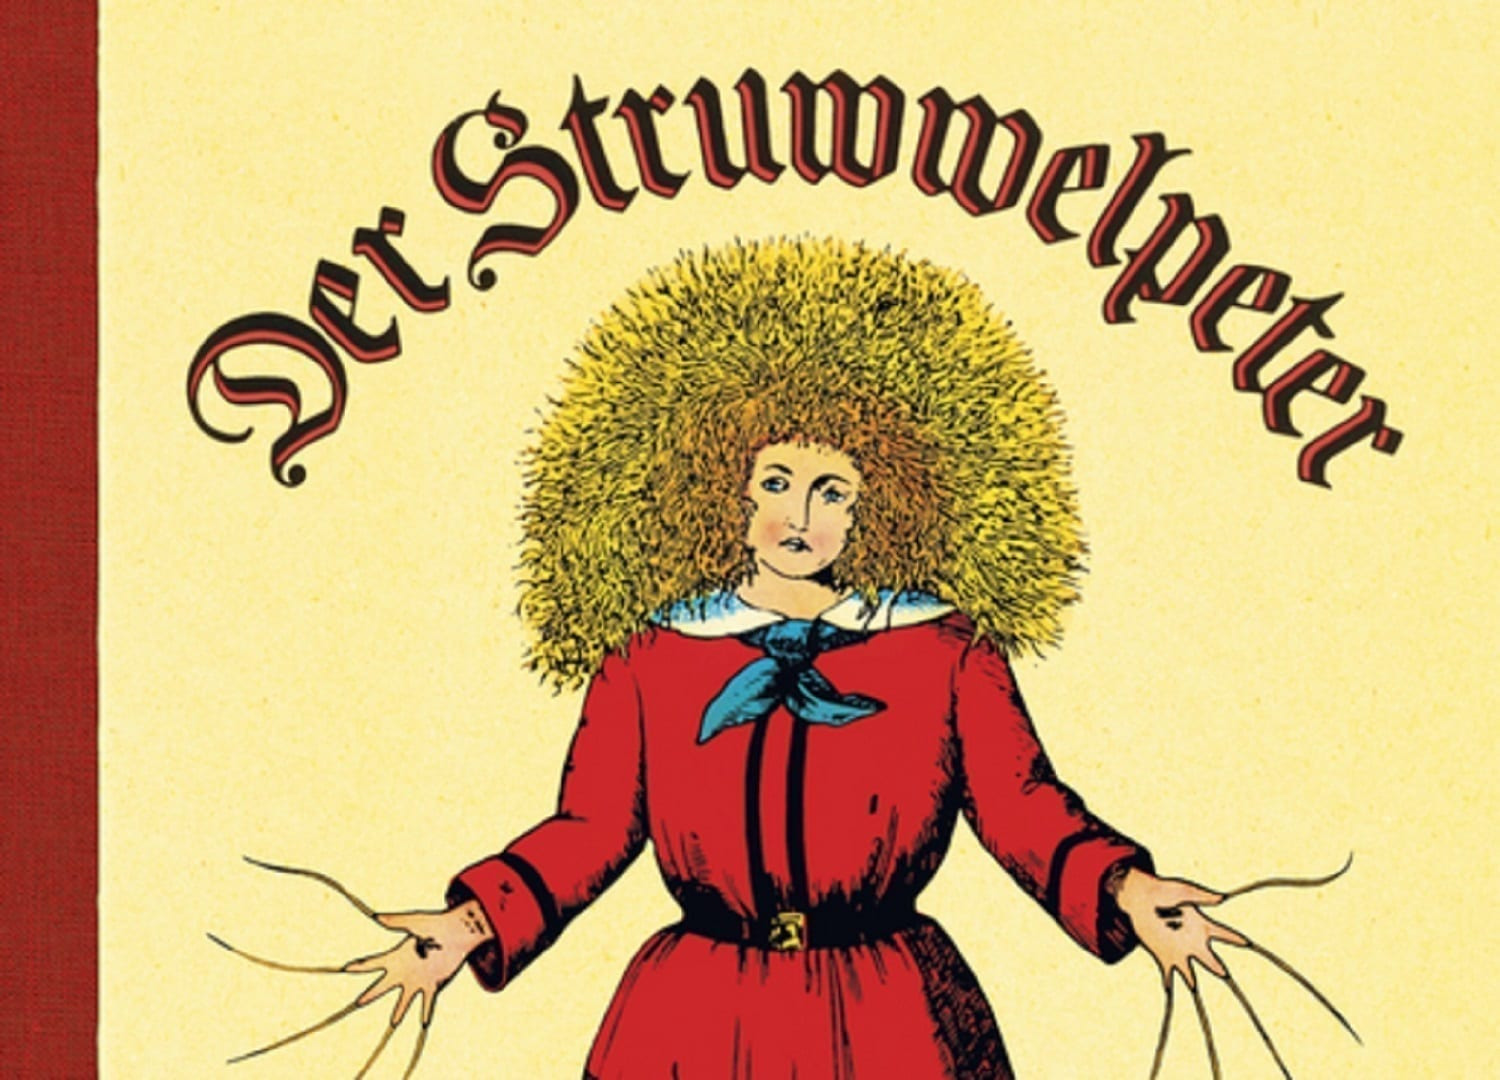 Der StruwwelPeter (in English)- How German Parents Kept Kids in Line